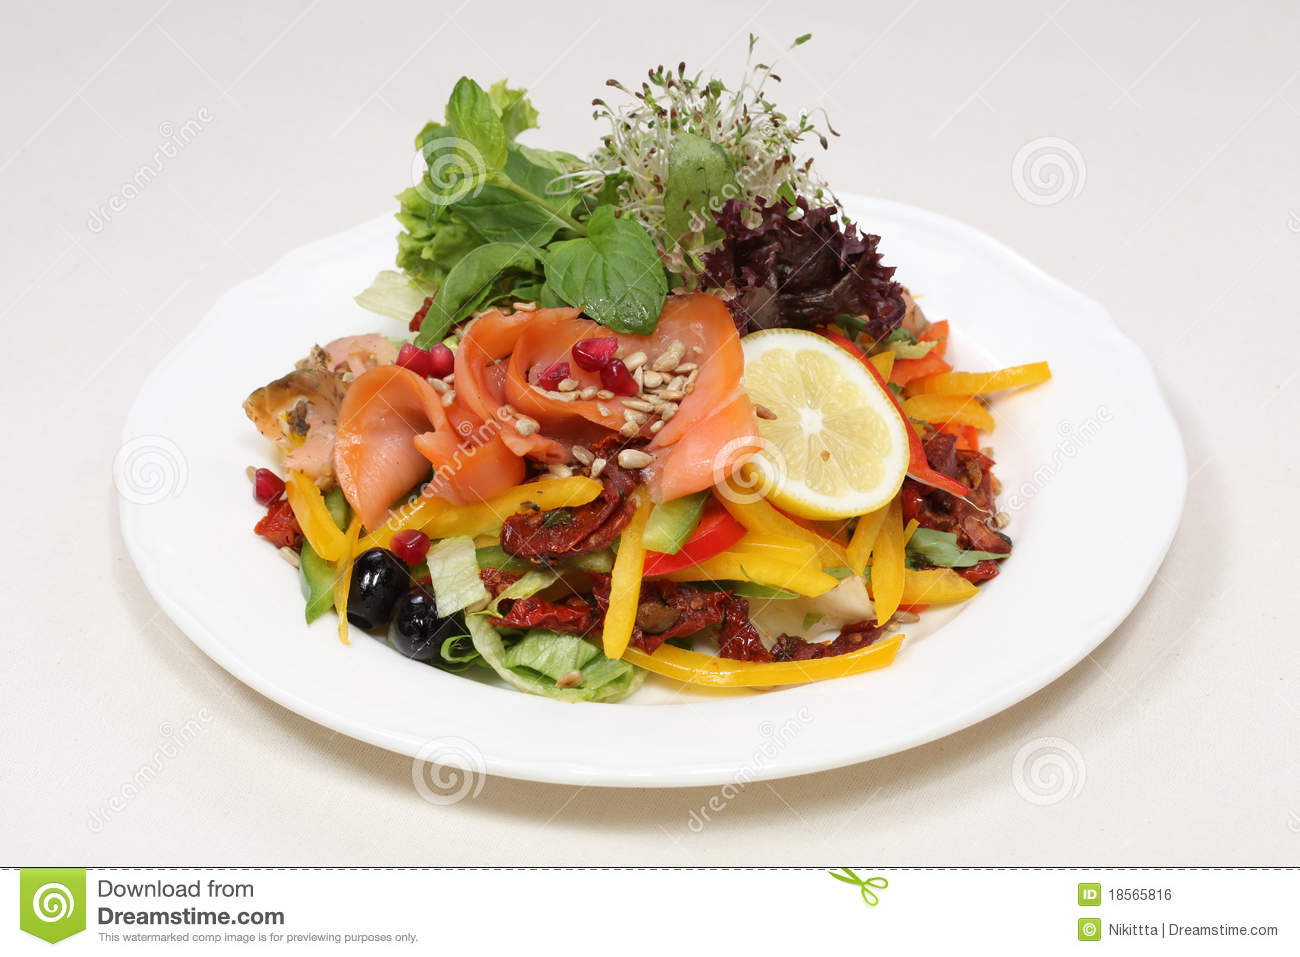 Fine Dining Meal Smoked Salmon Royalty Free Stock Image